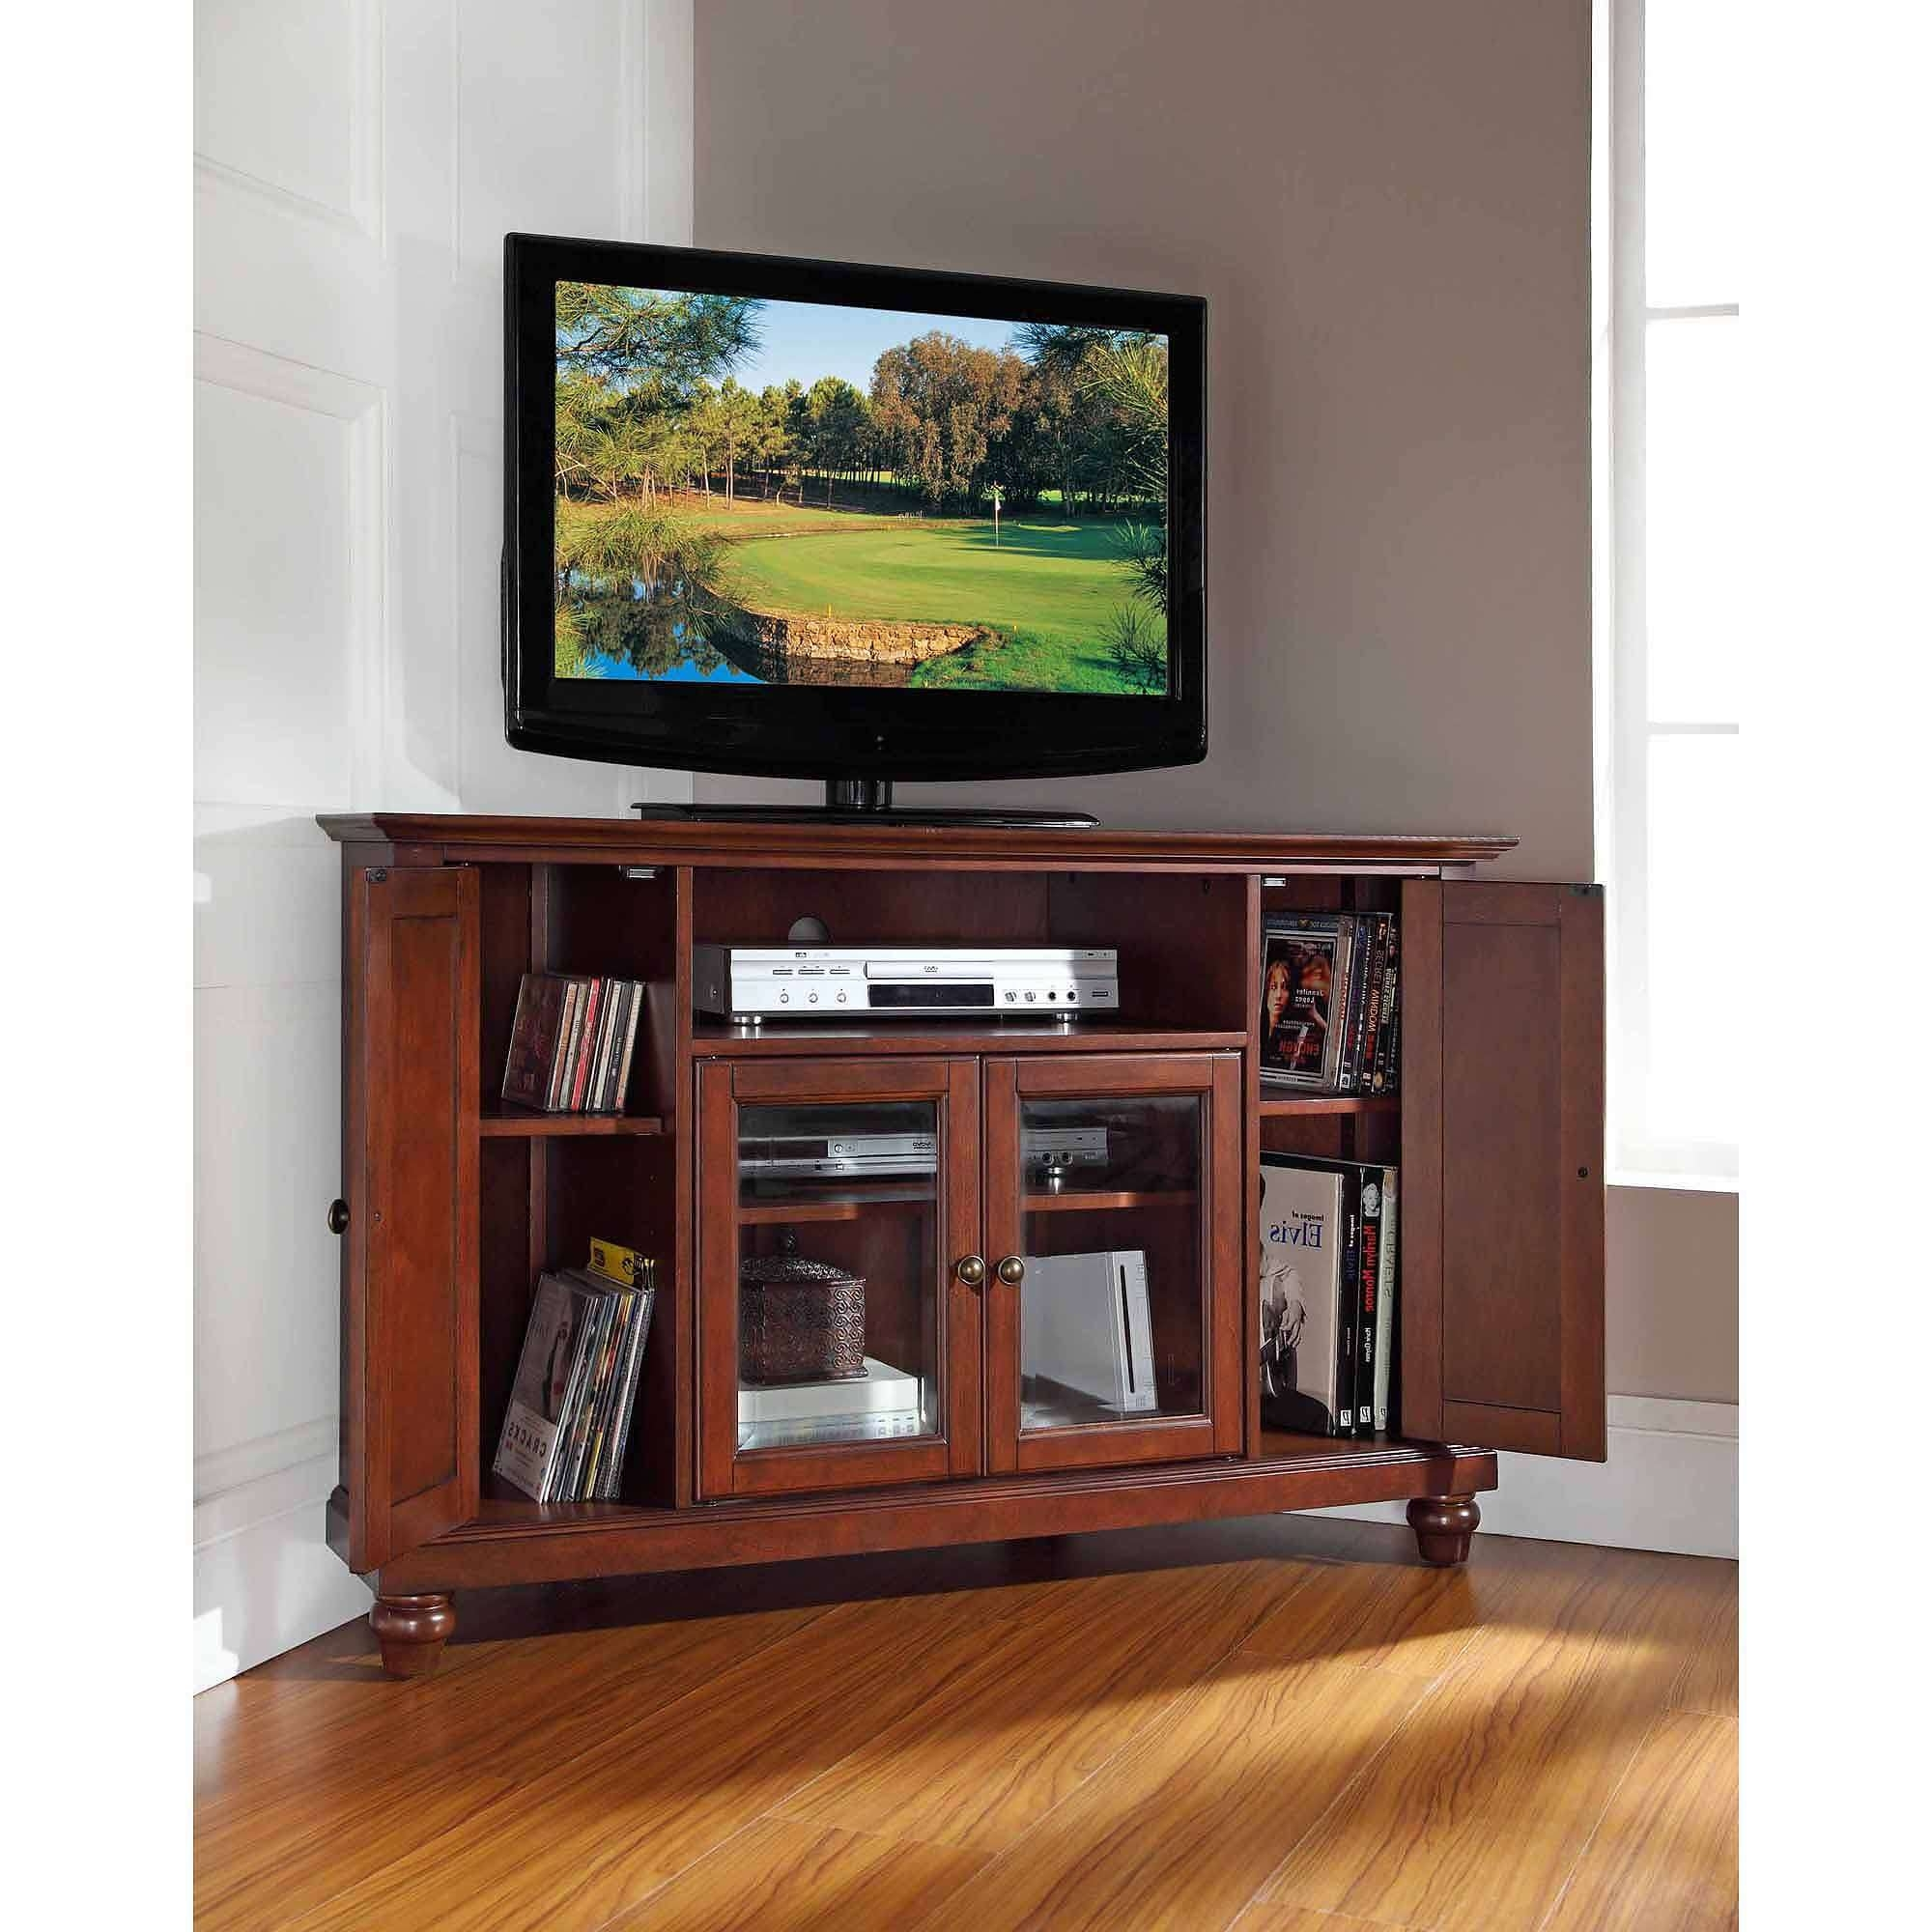 Tv : 41 Stunning 40 Inch Tv Stand Wood Photos Concept Stunning Pertaining To 40 Inch Corner Tv Stands (View 9 of 15)